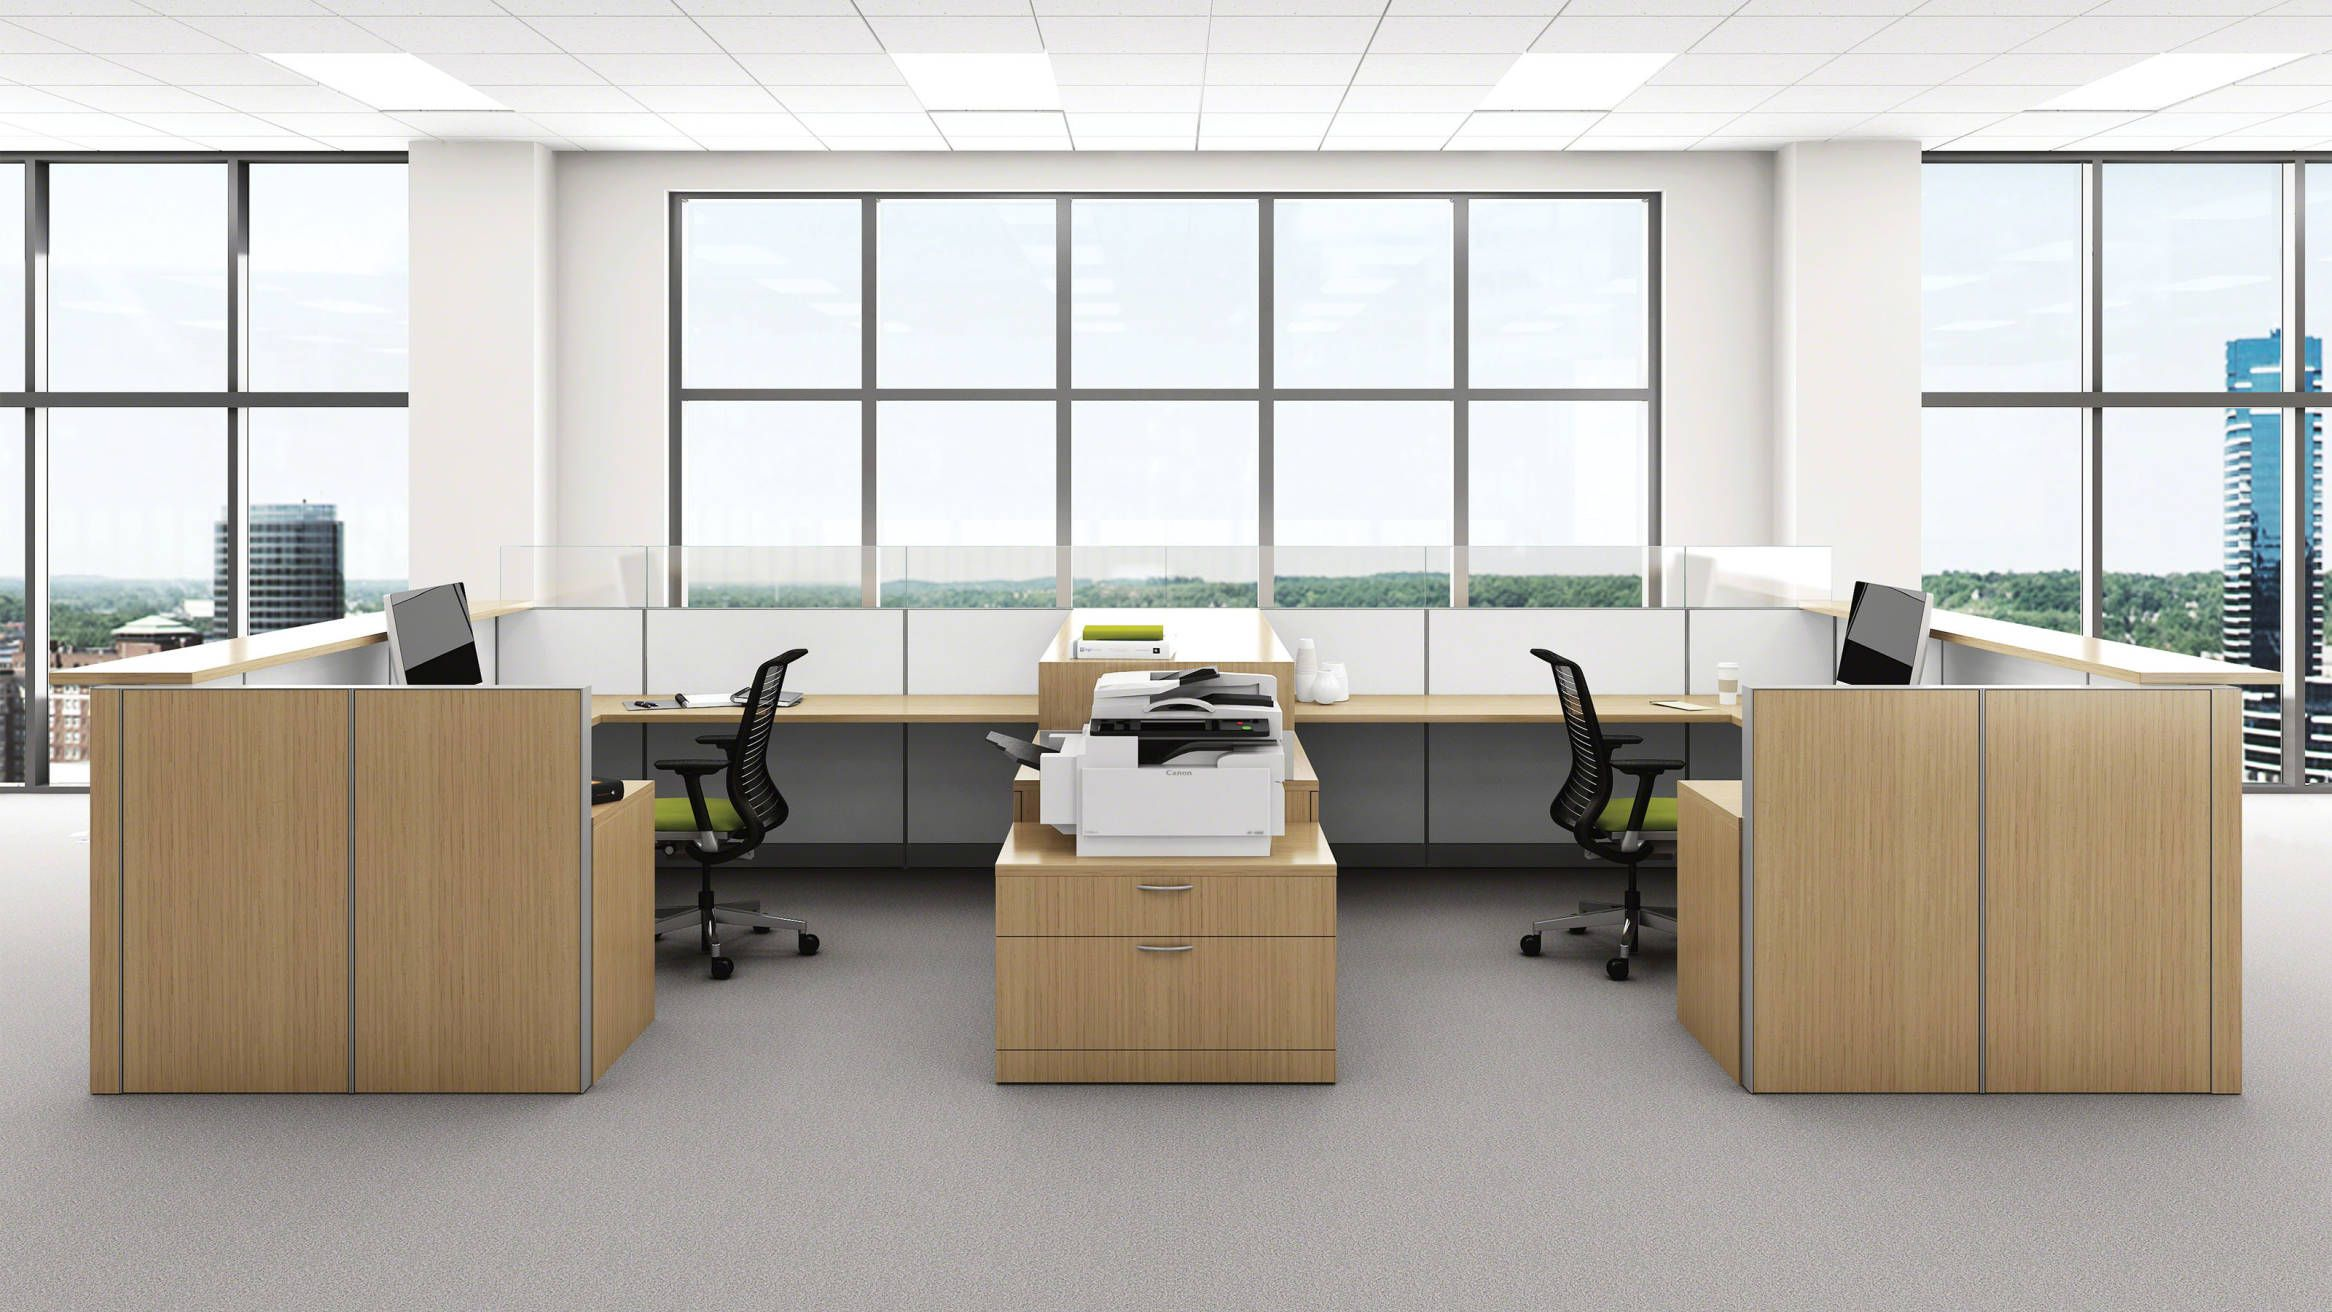 Montage Office Workstation Panel Systems Steelcase Office Storage Furniture Minimalist Desk Design Modular Office Furniture